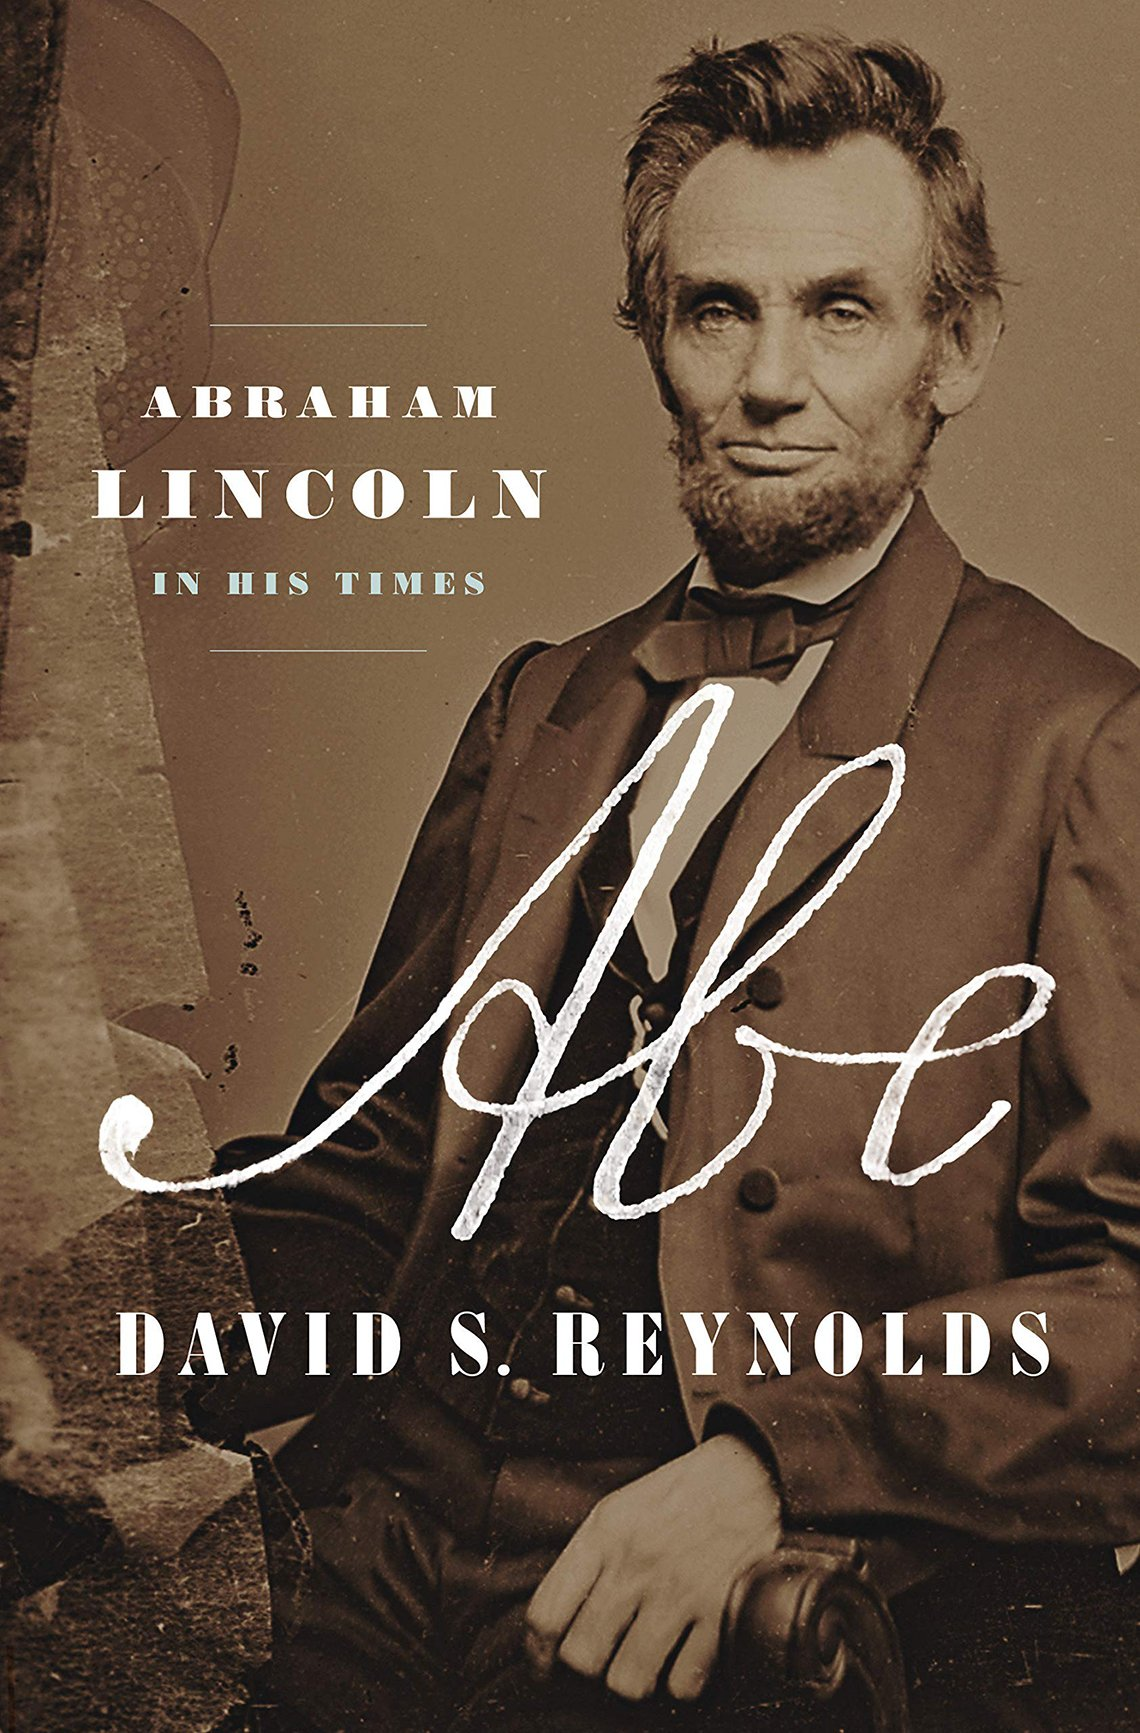 Abe: Abraham Lincoln in His Times, por David S. Reynolds.